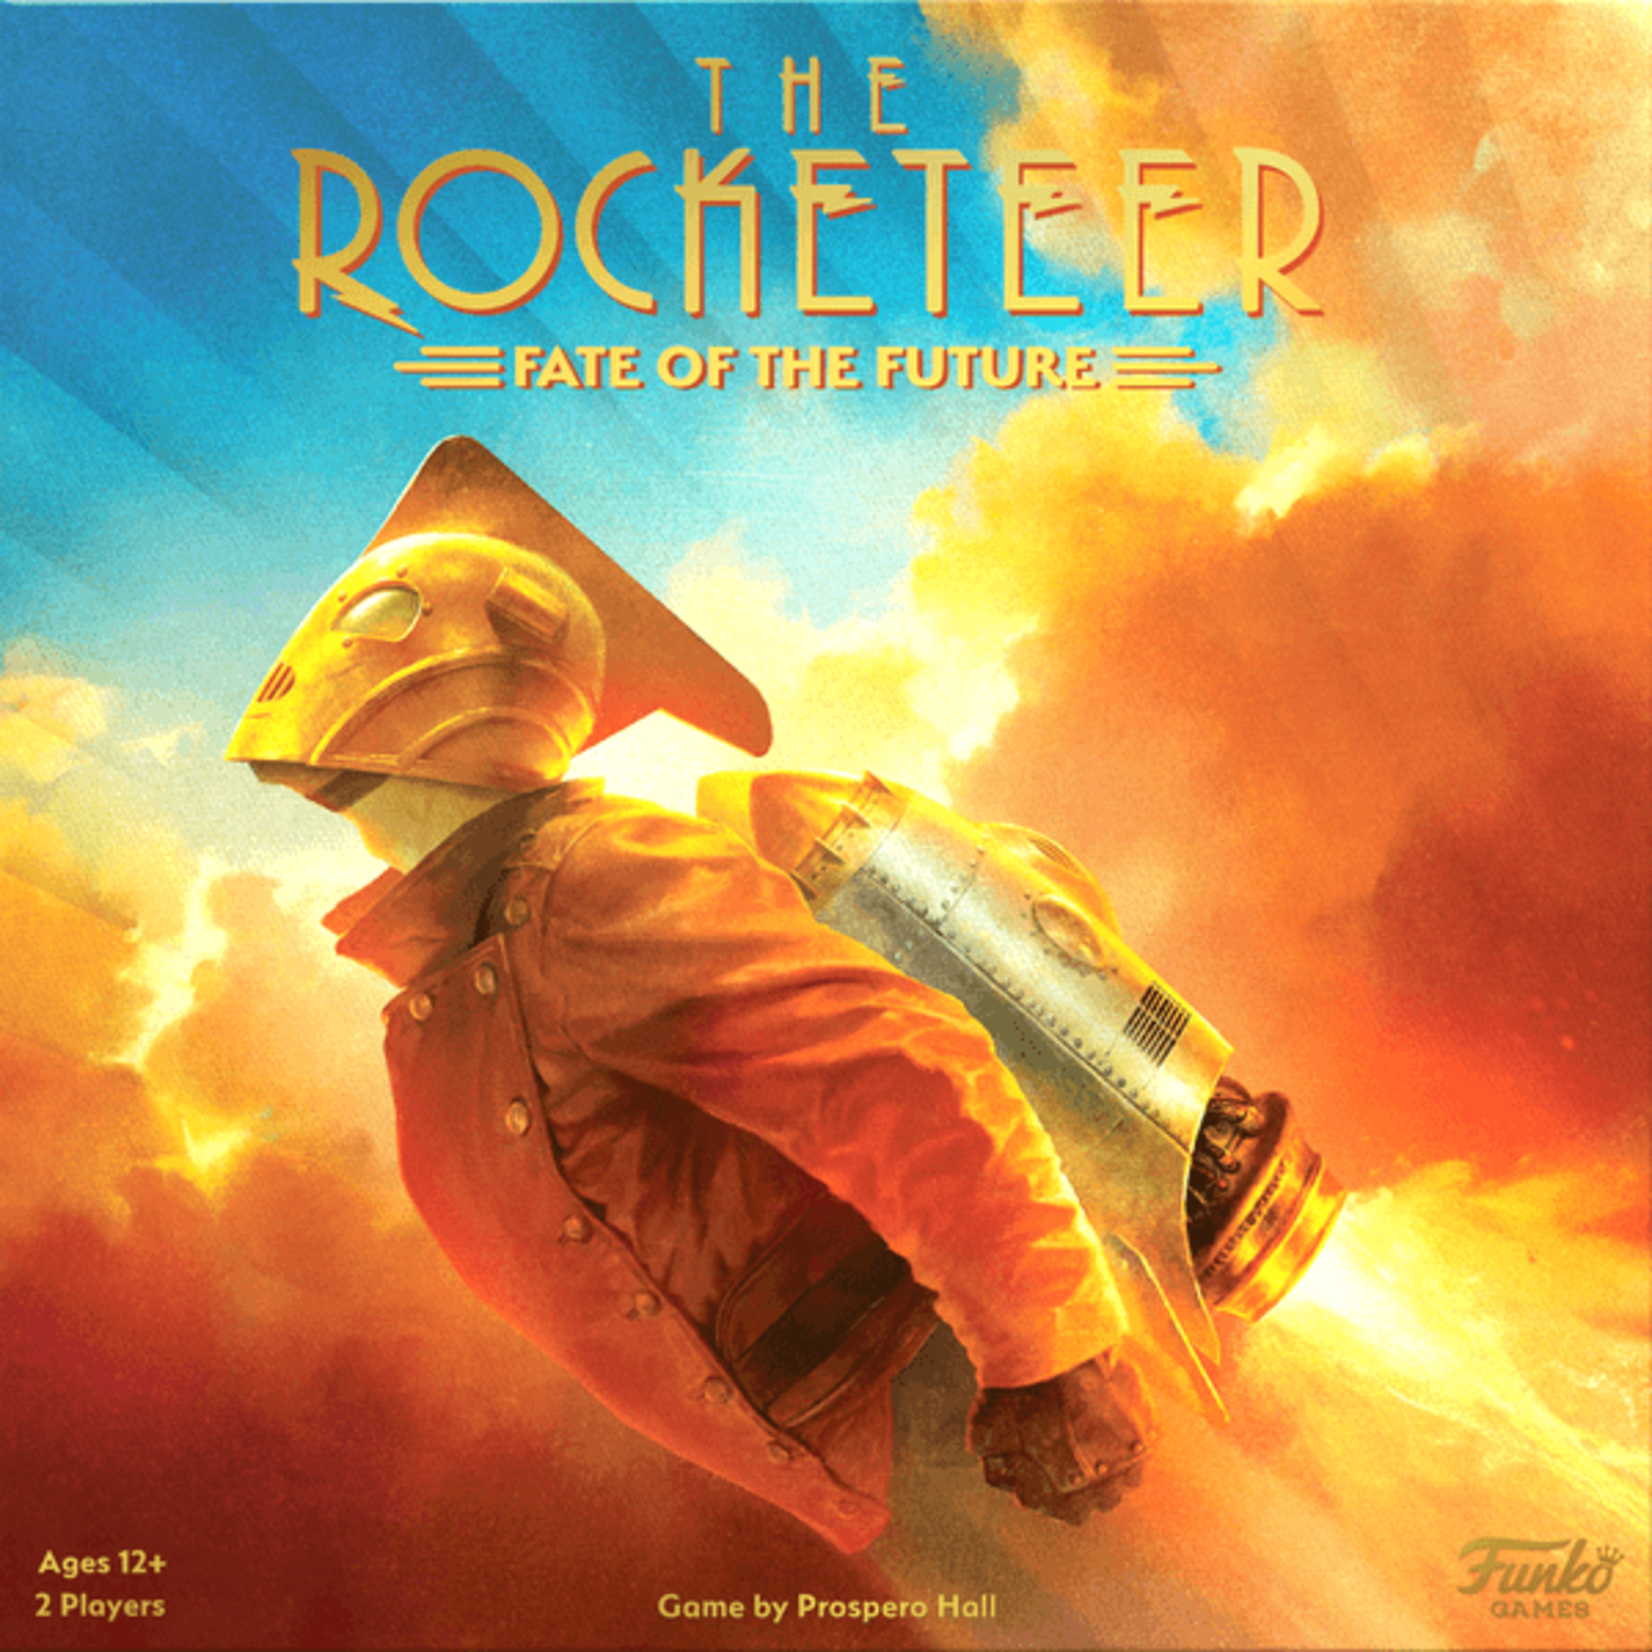 Funko The Rocketeer: Fate of the Future